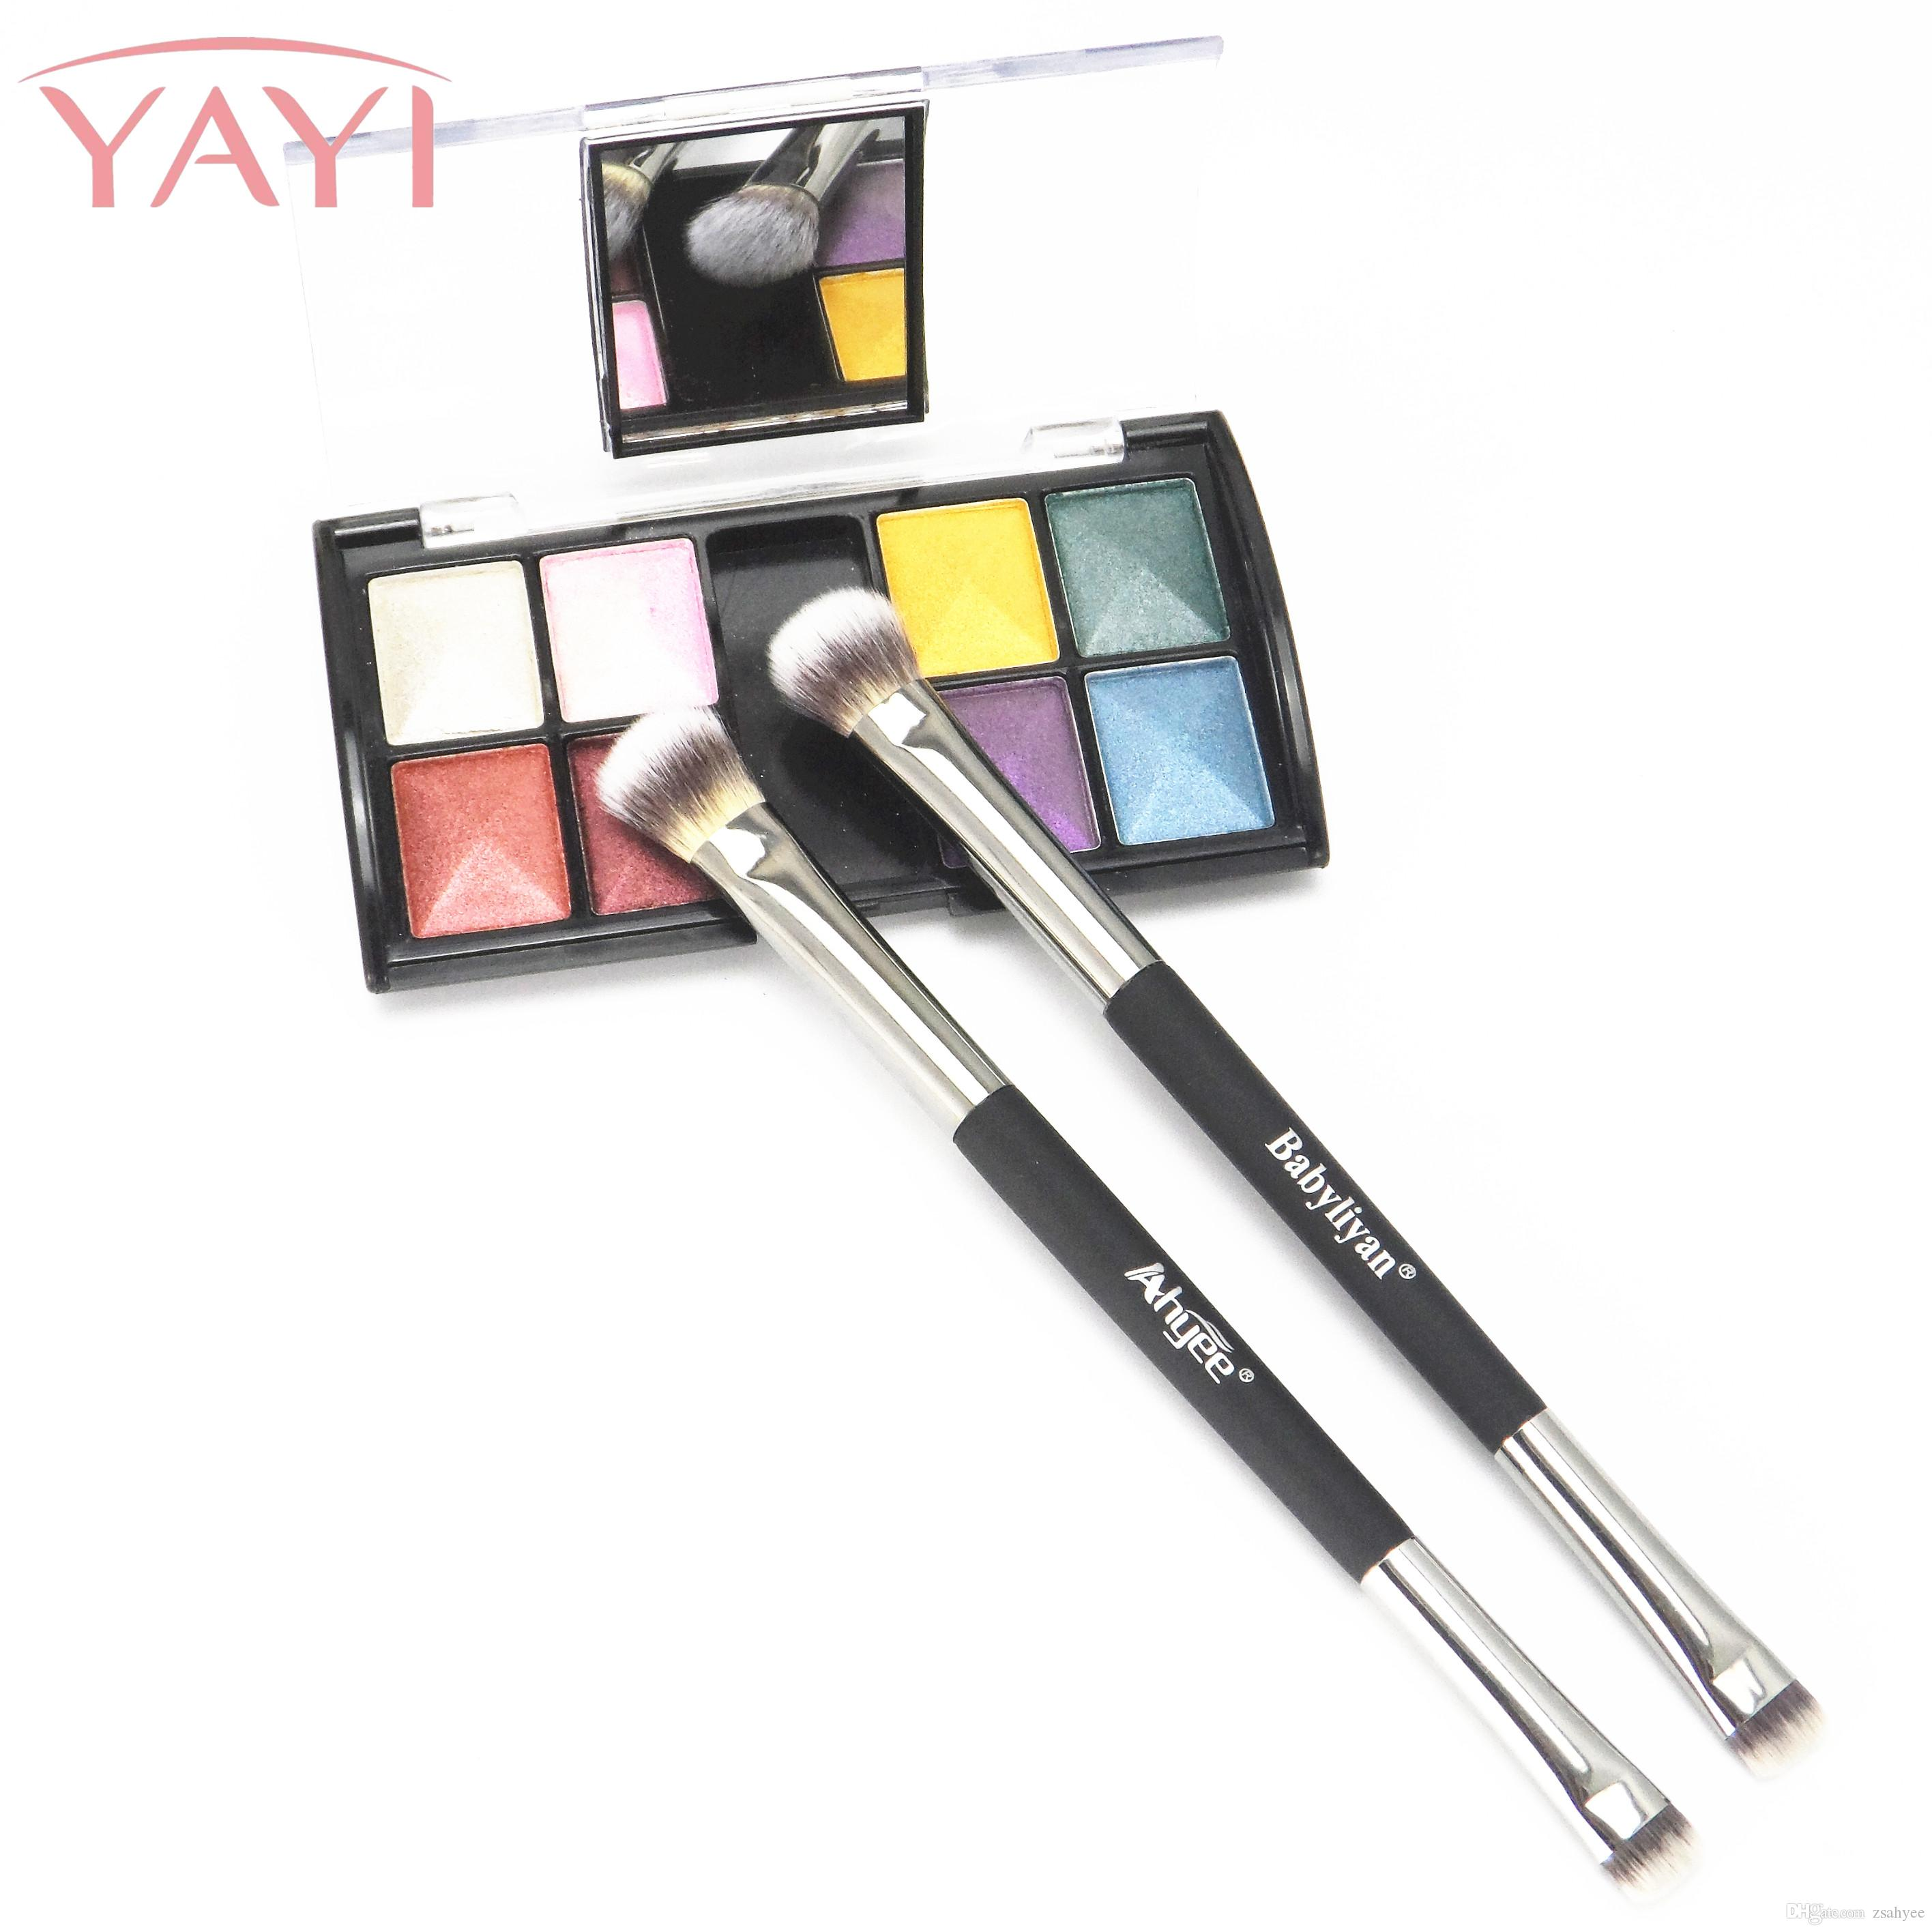 This it is cosmetics for Brand makeup brushes ULTA 2 conflated Heavenly Luxe Dual airbrush blending Eyeshadow&Eyeliner Makeup Brushes